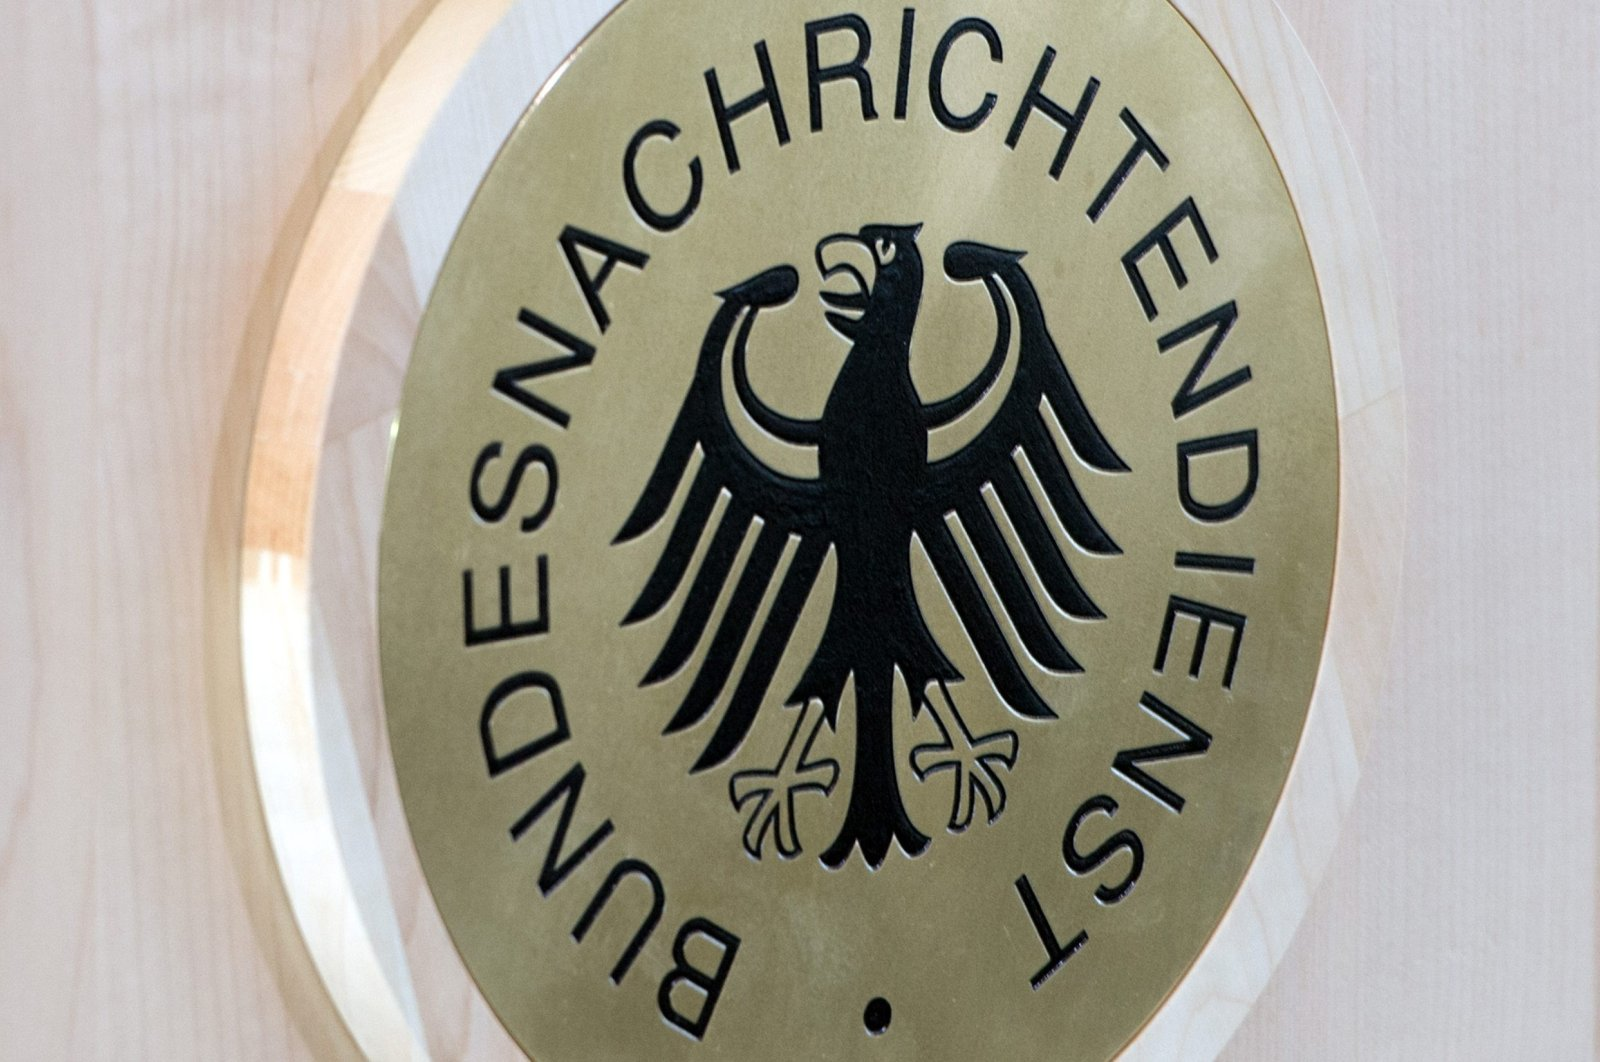 The logo of Germany's Federal Intelligence Service, the Bundesnachrichtendienst, is seen in this undated file photo.